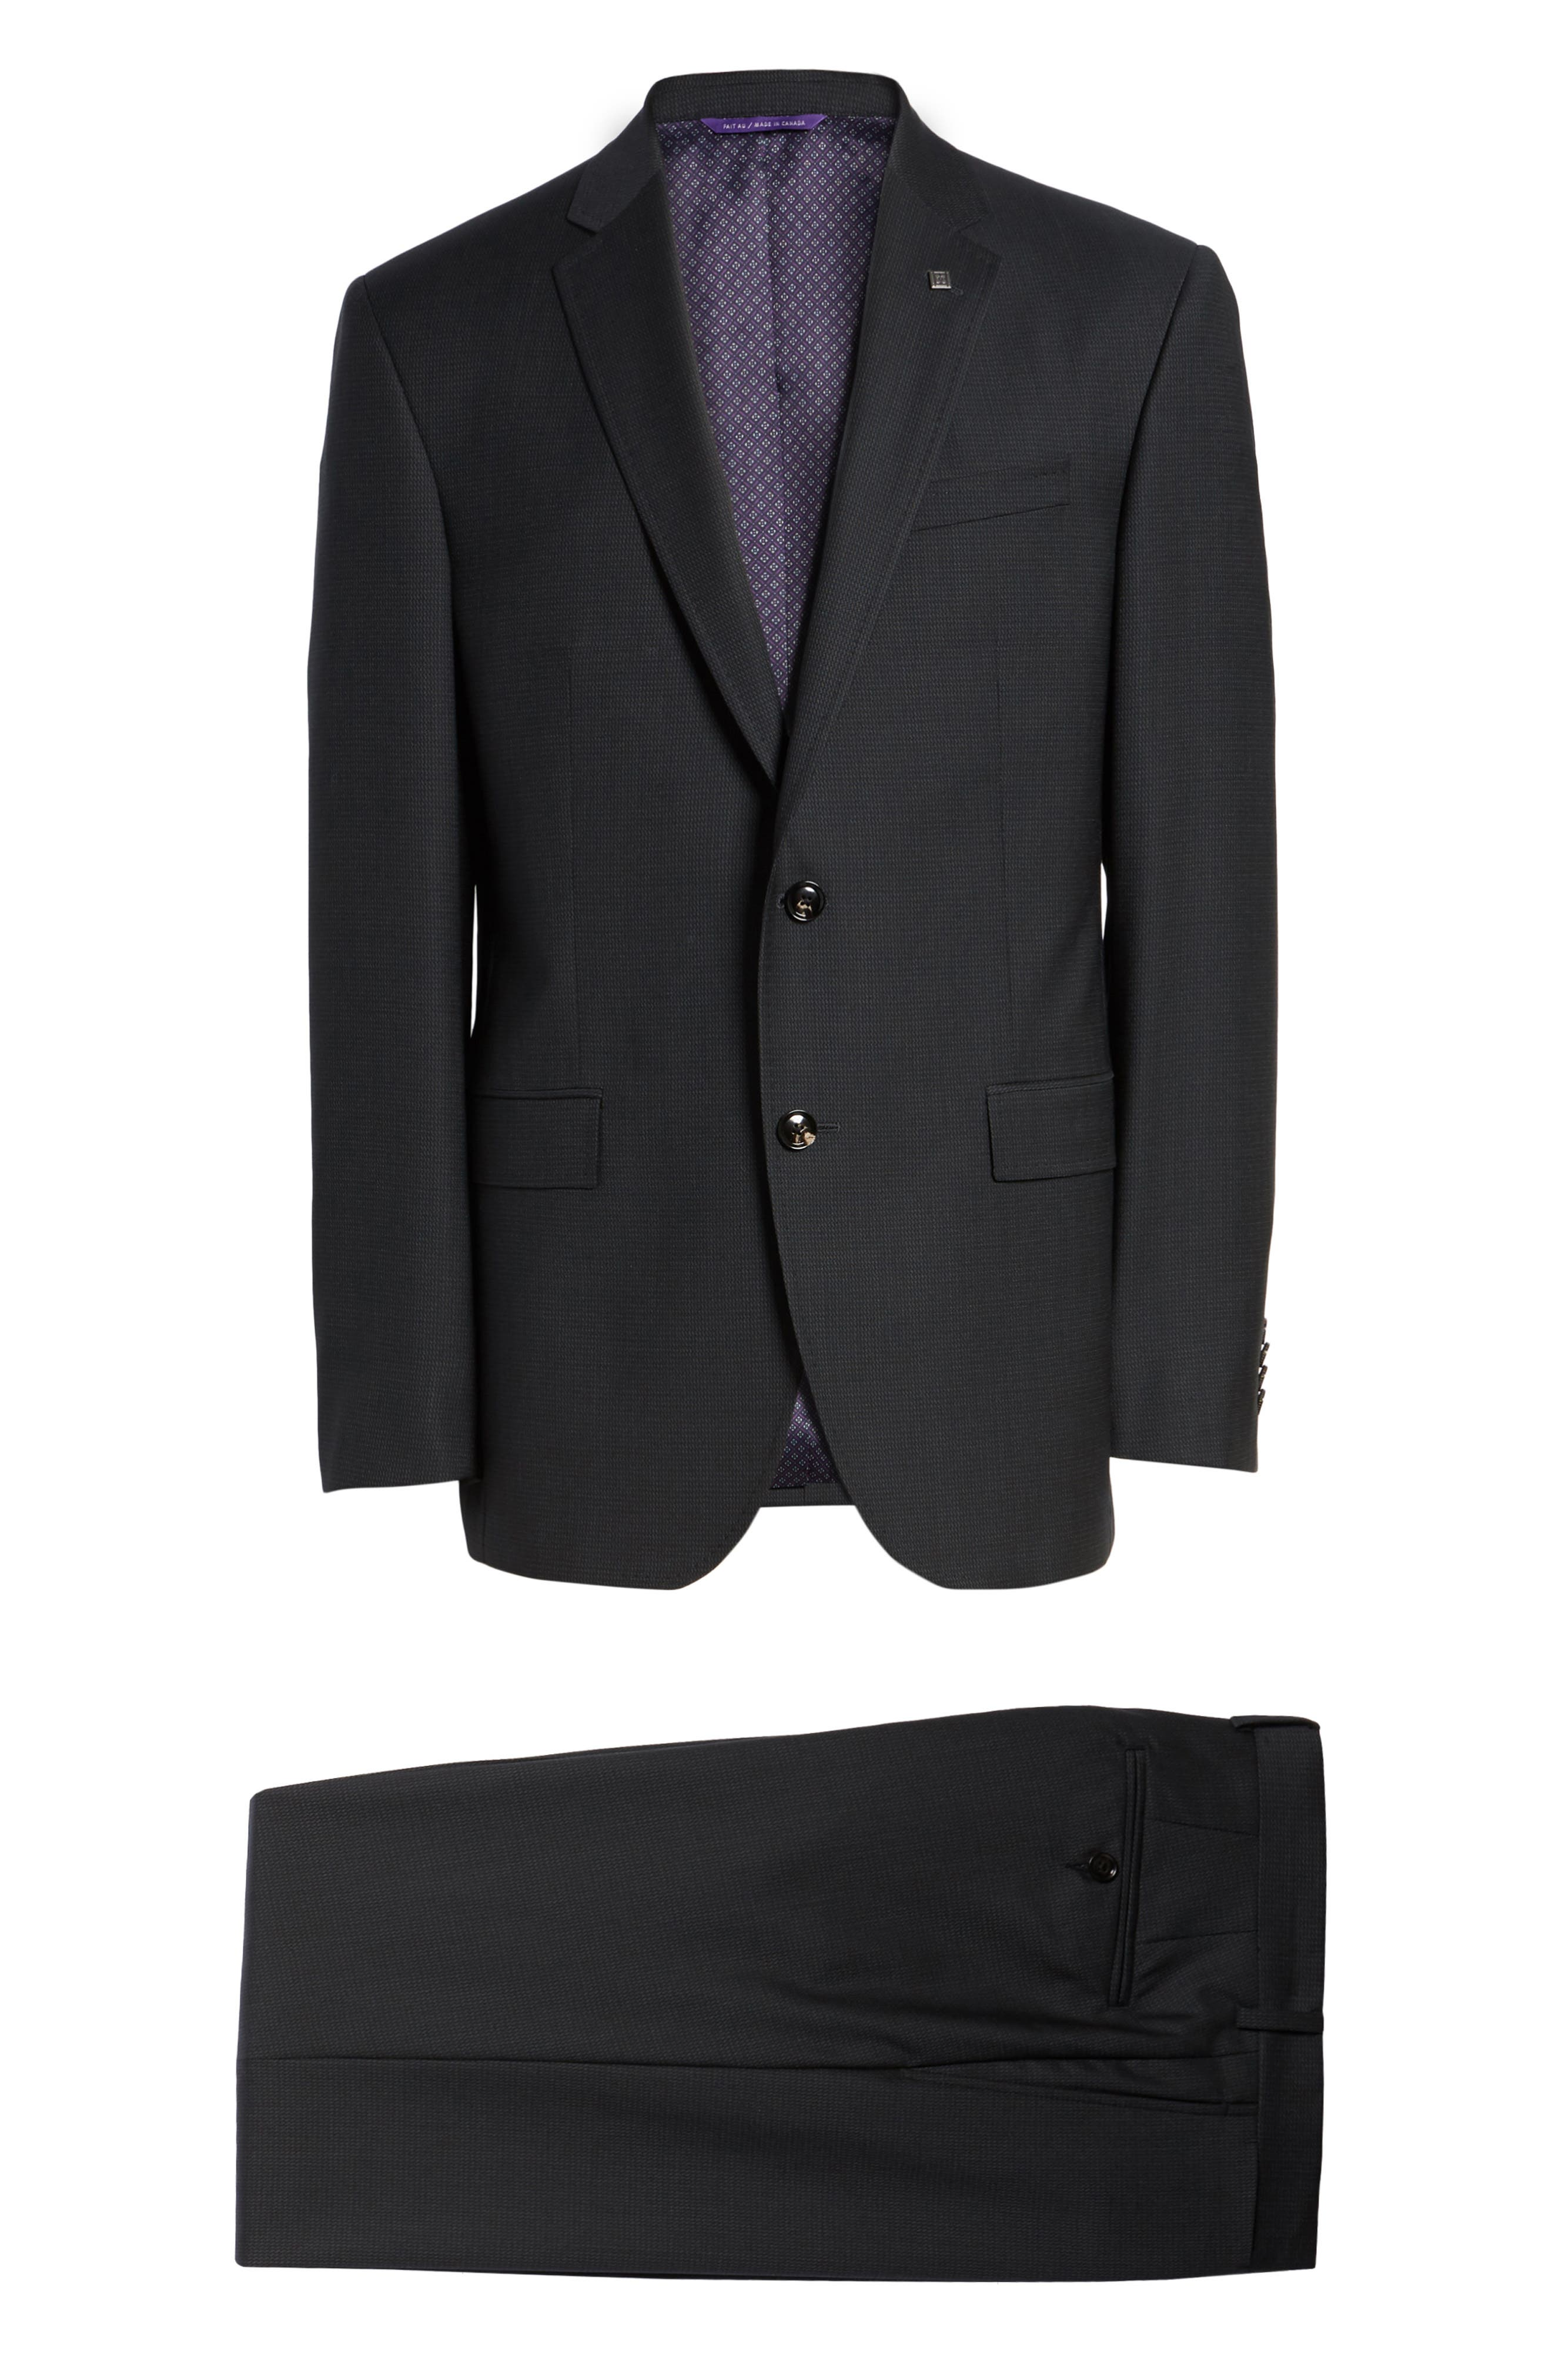 Jay Trim Fit Solid Wool Suit,                             Alternate thumbnail 8, color,                             Black Charcoal